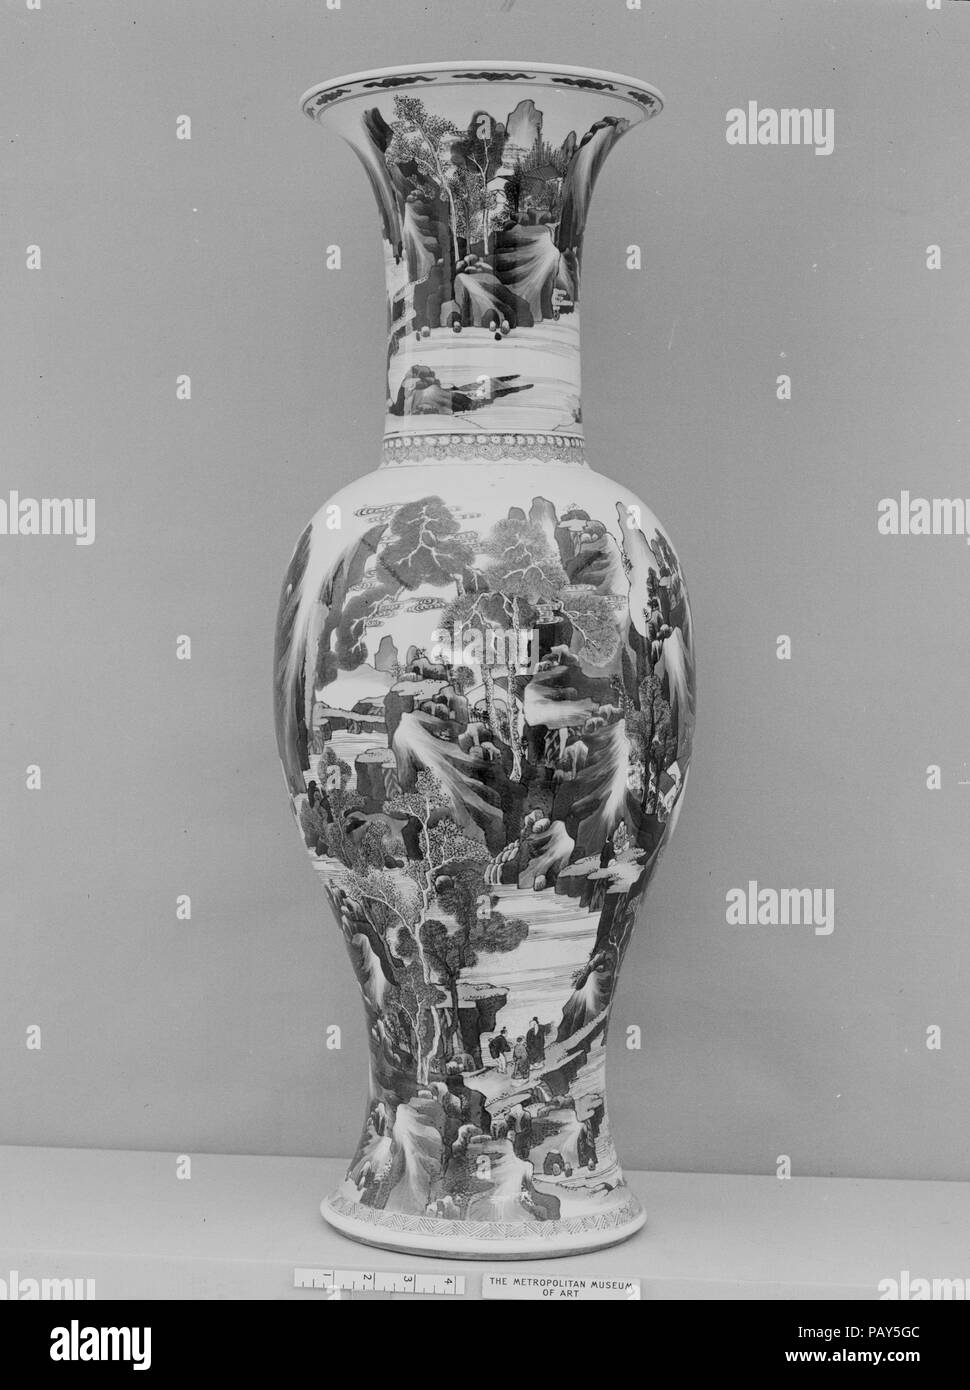 Vase with landscape scenes. Culture: China. Dimensions: H. 29 in. (73.7 cm). Date: late 17th century.  This idyllic landscape enjoyed by scholar-gentlemen directly recalls contemporaneous court paintings that evoke tenth- and eleventh-century traditions. Museum: Metropolitan Museum of Art, New York, USA. - Stock Image